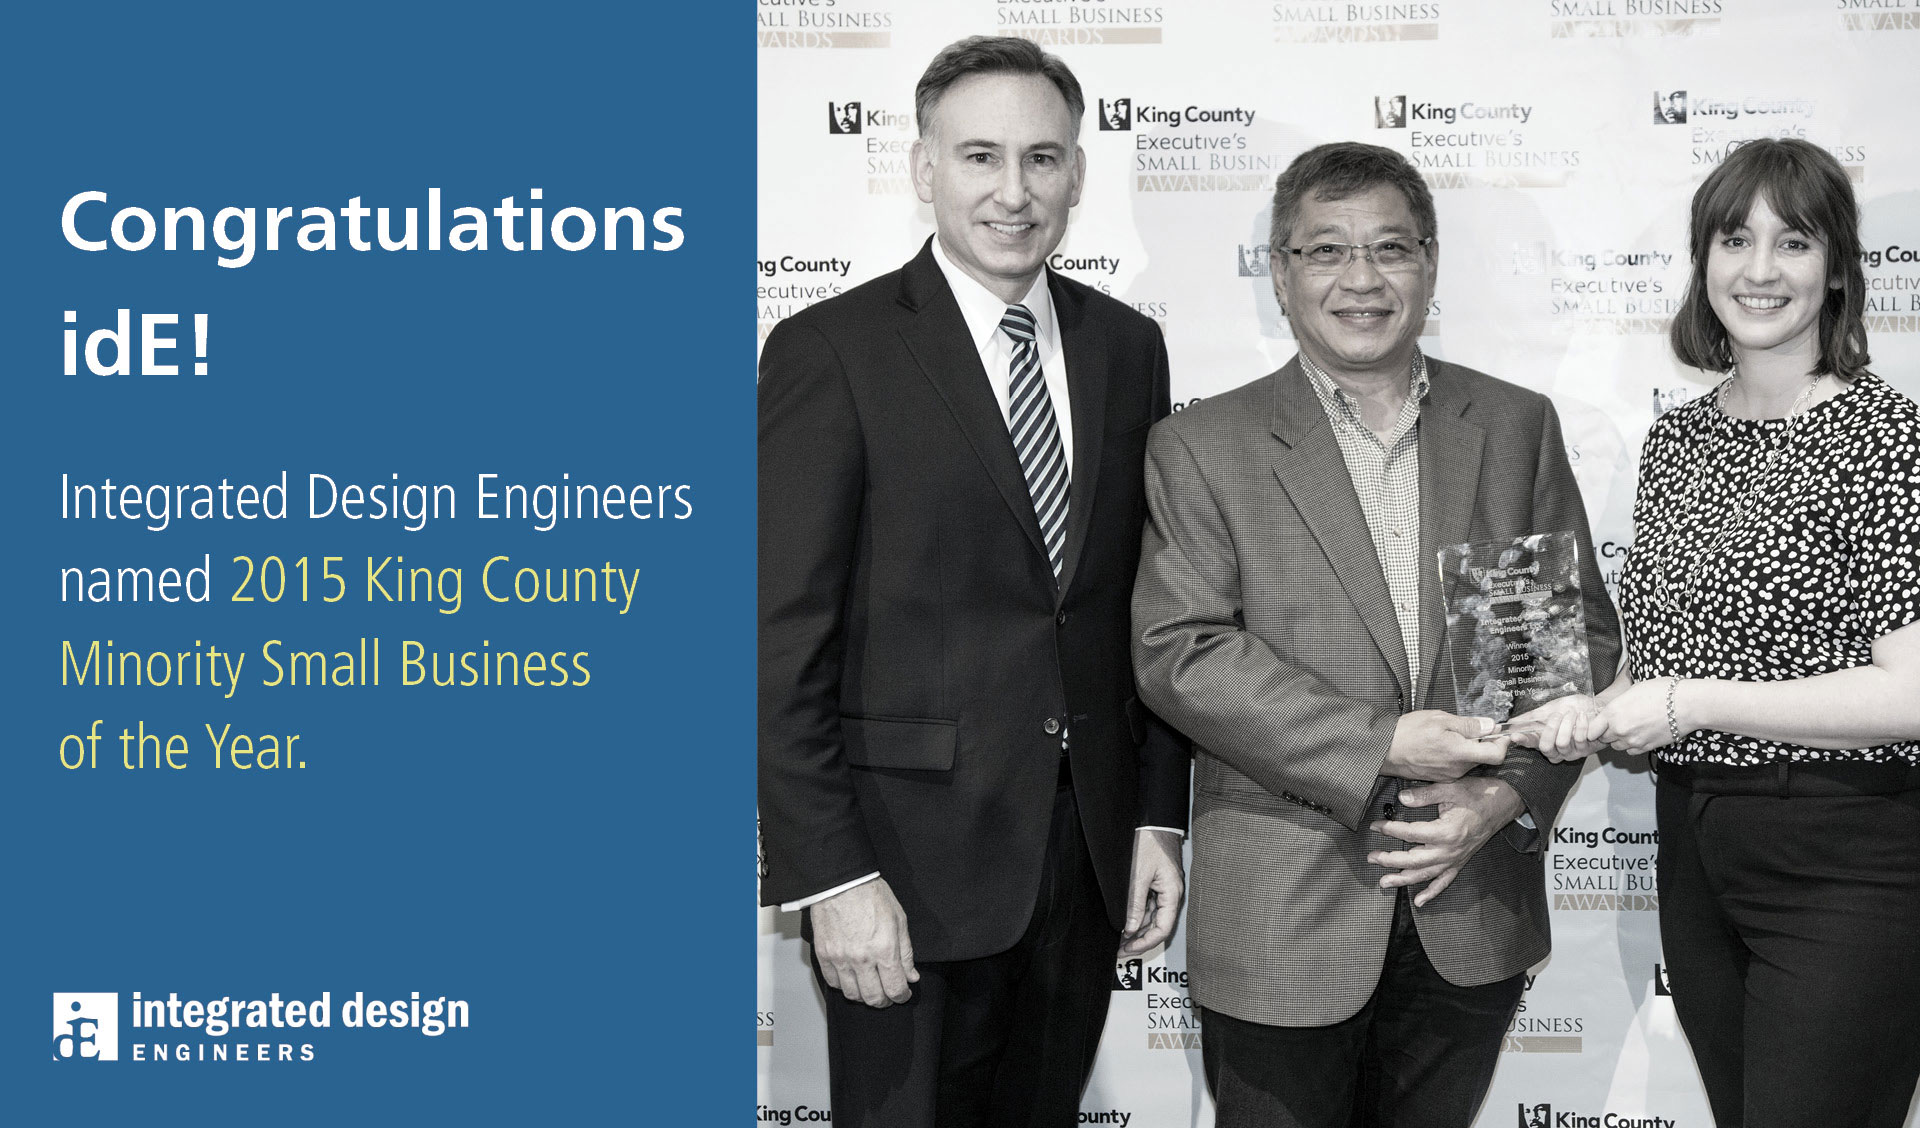 Integrated Design Engineers' Ignasius Seilie and Lindsey Burns accepts the award of King County Minority-Owned Business of the Year from King County Executive, Dow Constantine.